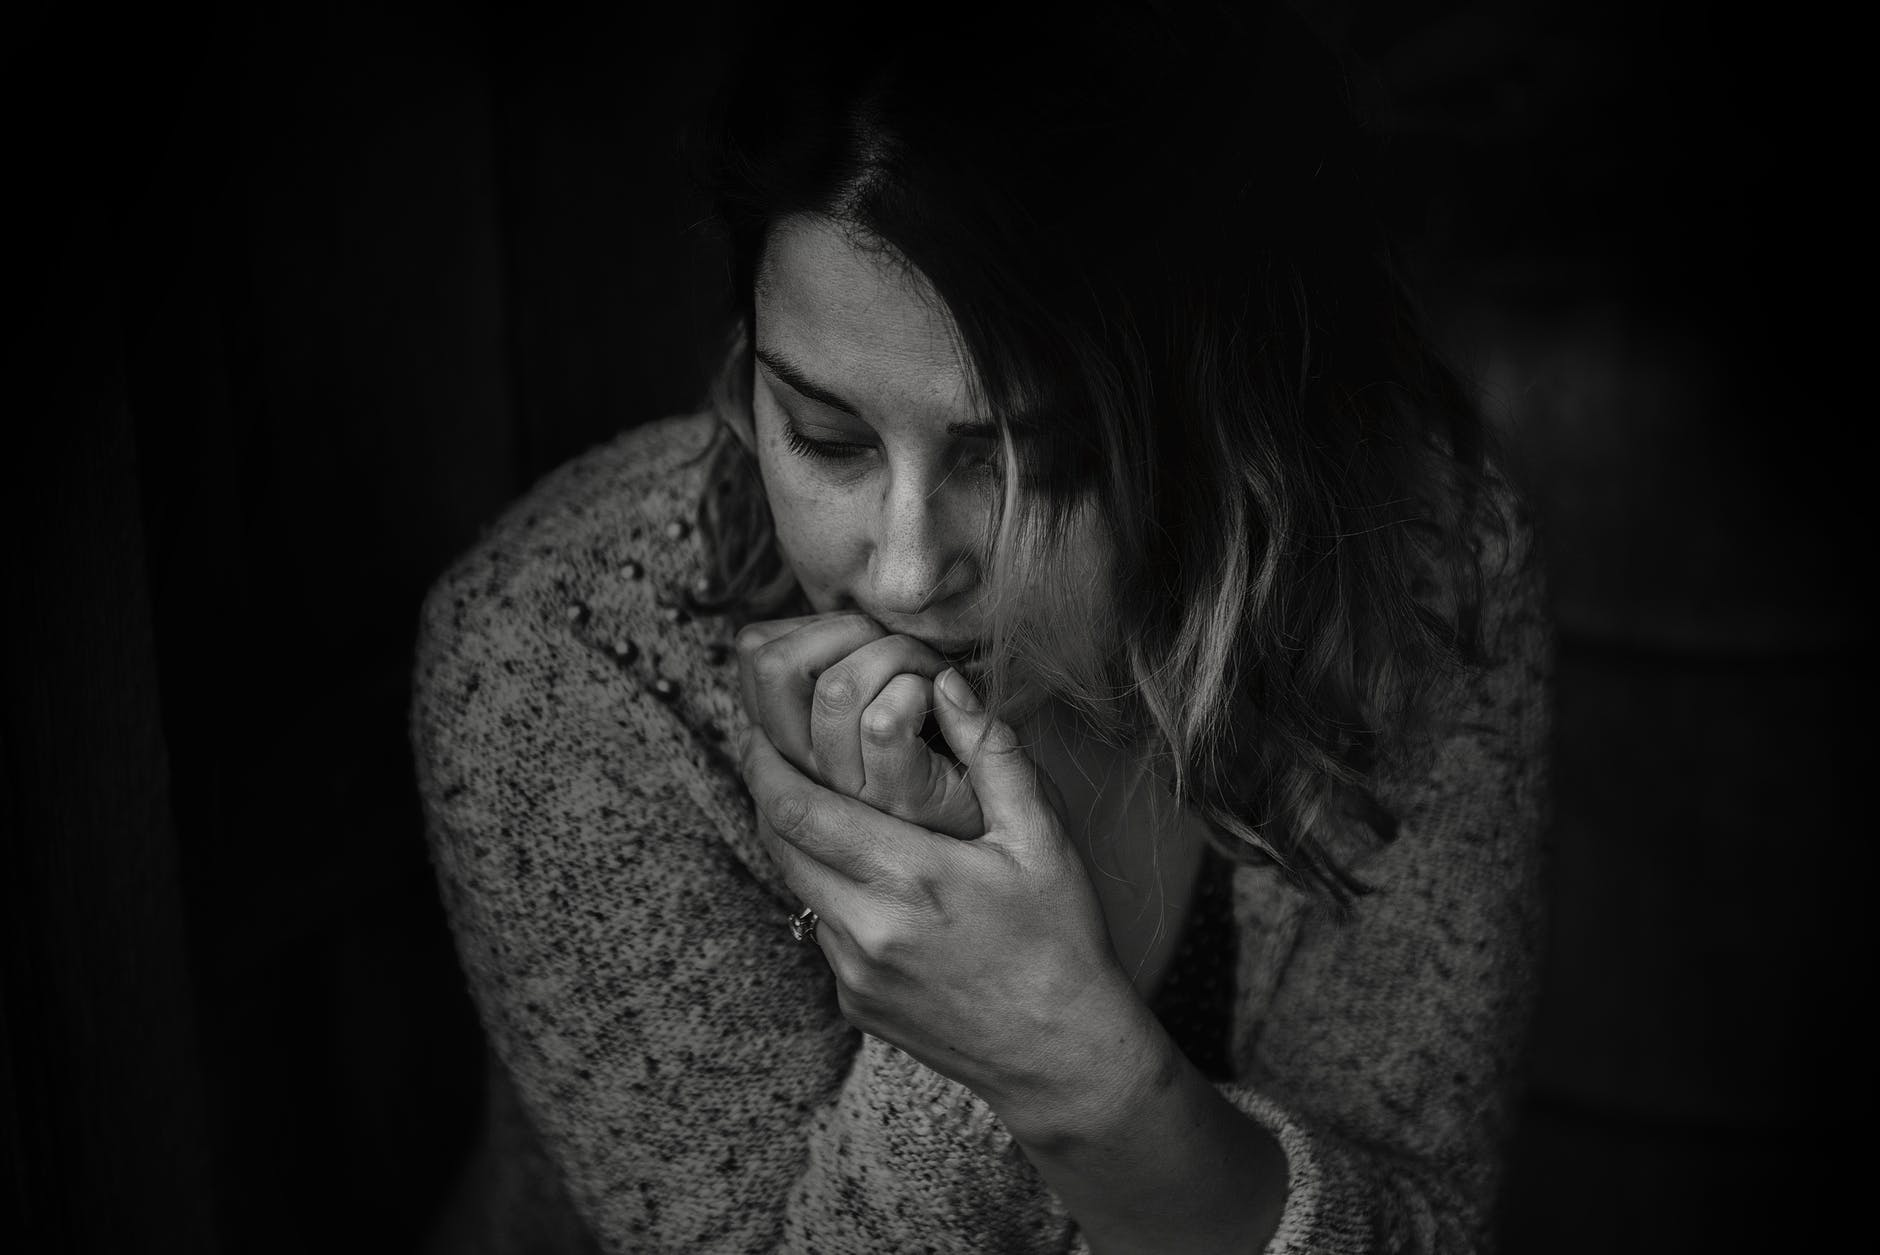 greyscale photography of woman wearing long sleeved top